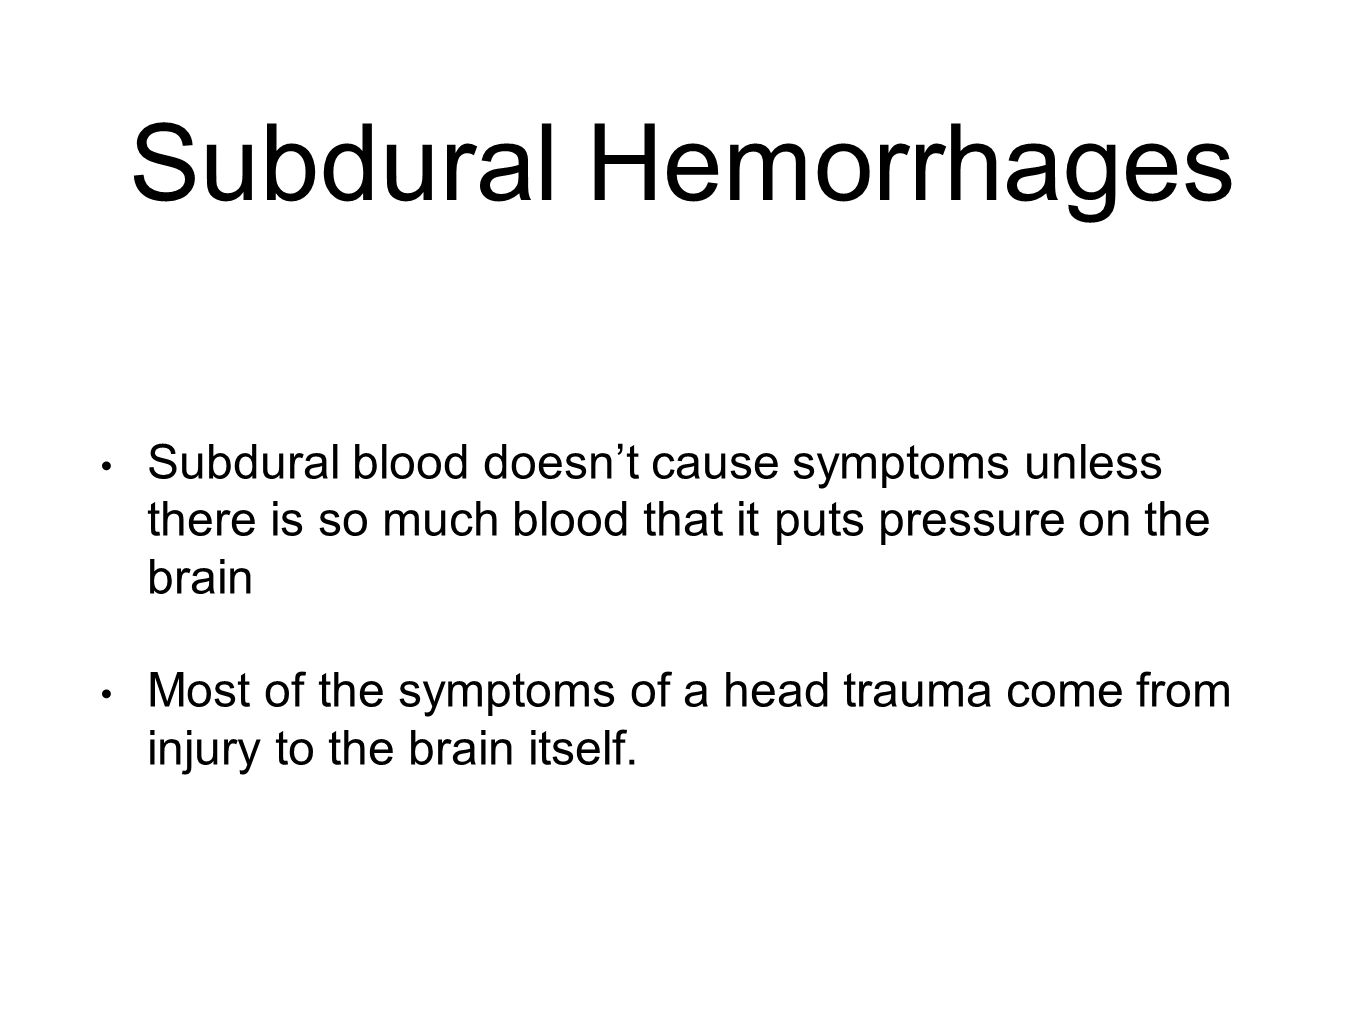 Subdural Hemorrhages Subdural blood doesn't cause symptoms unless there is so much blood that it puts pressure on the brain Most of the symptoms of a head trauma come from injury to the brain itself.